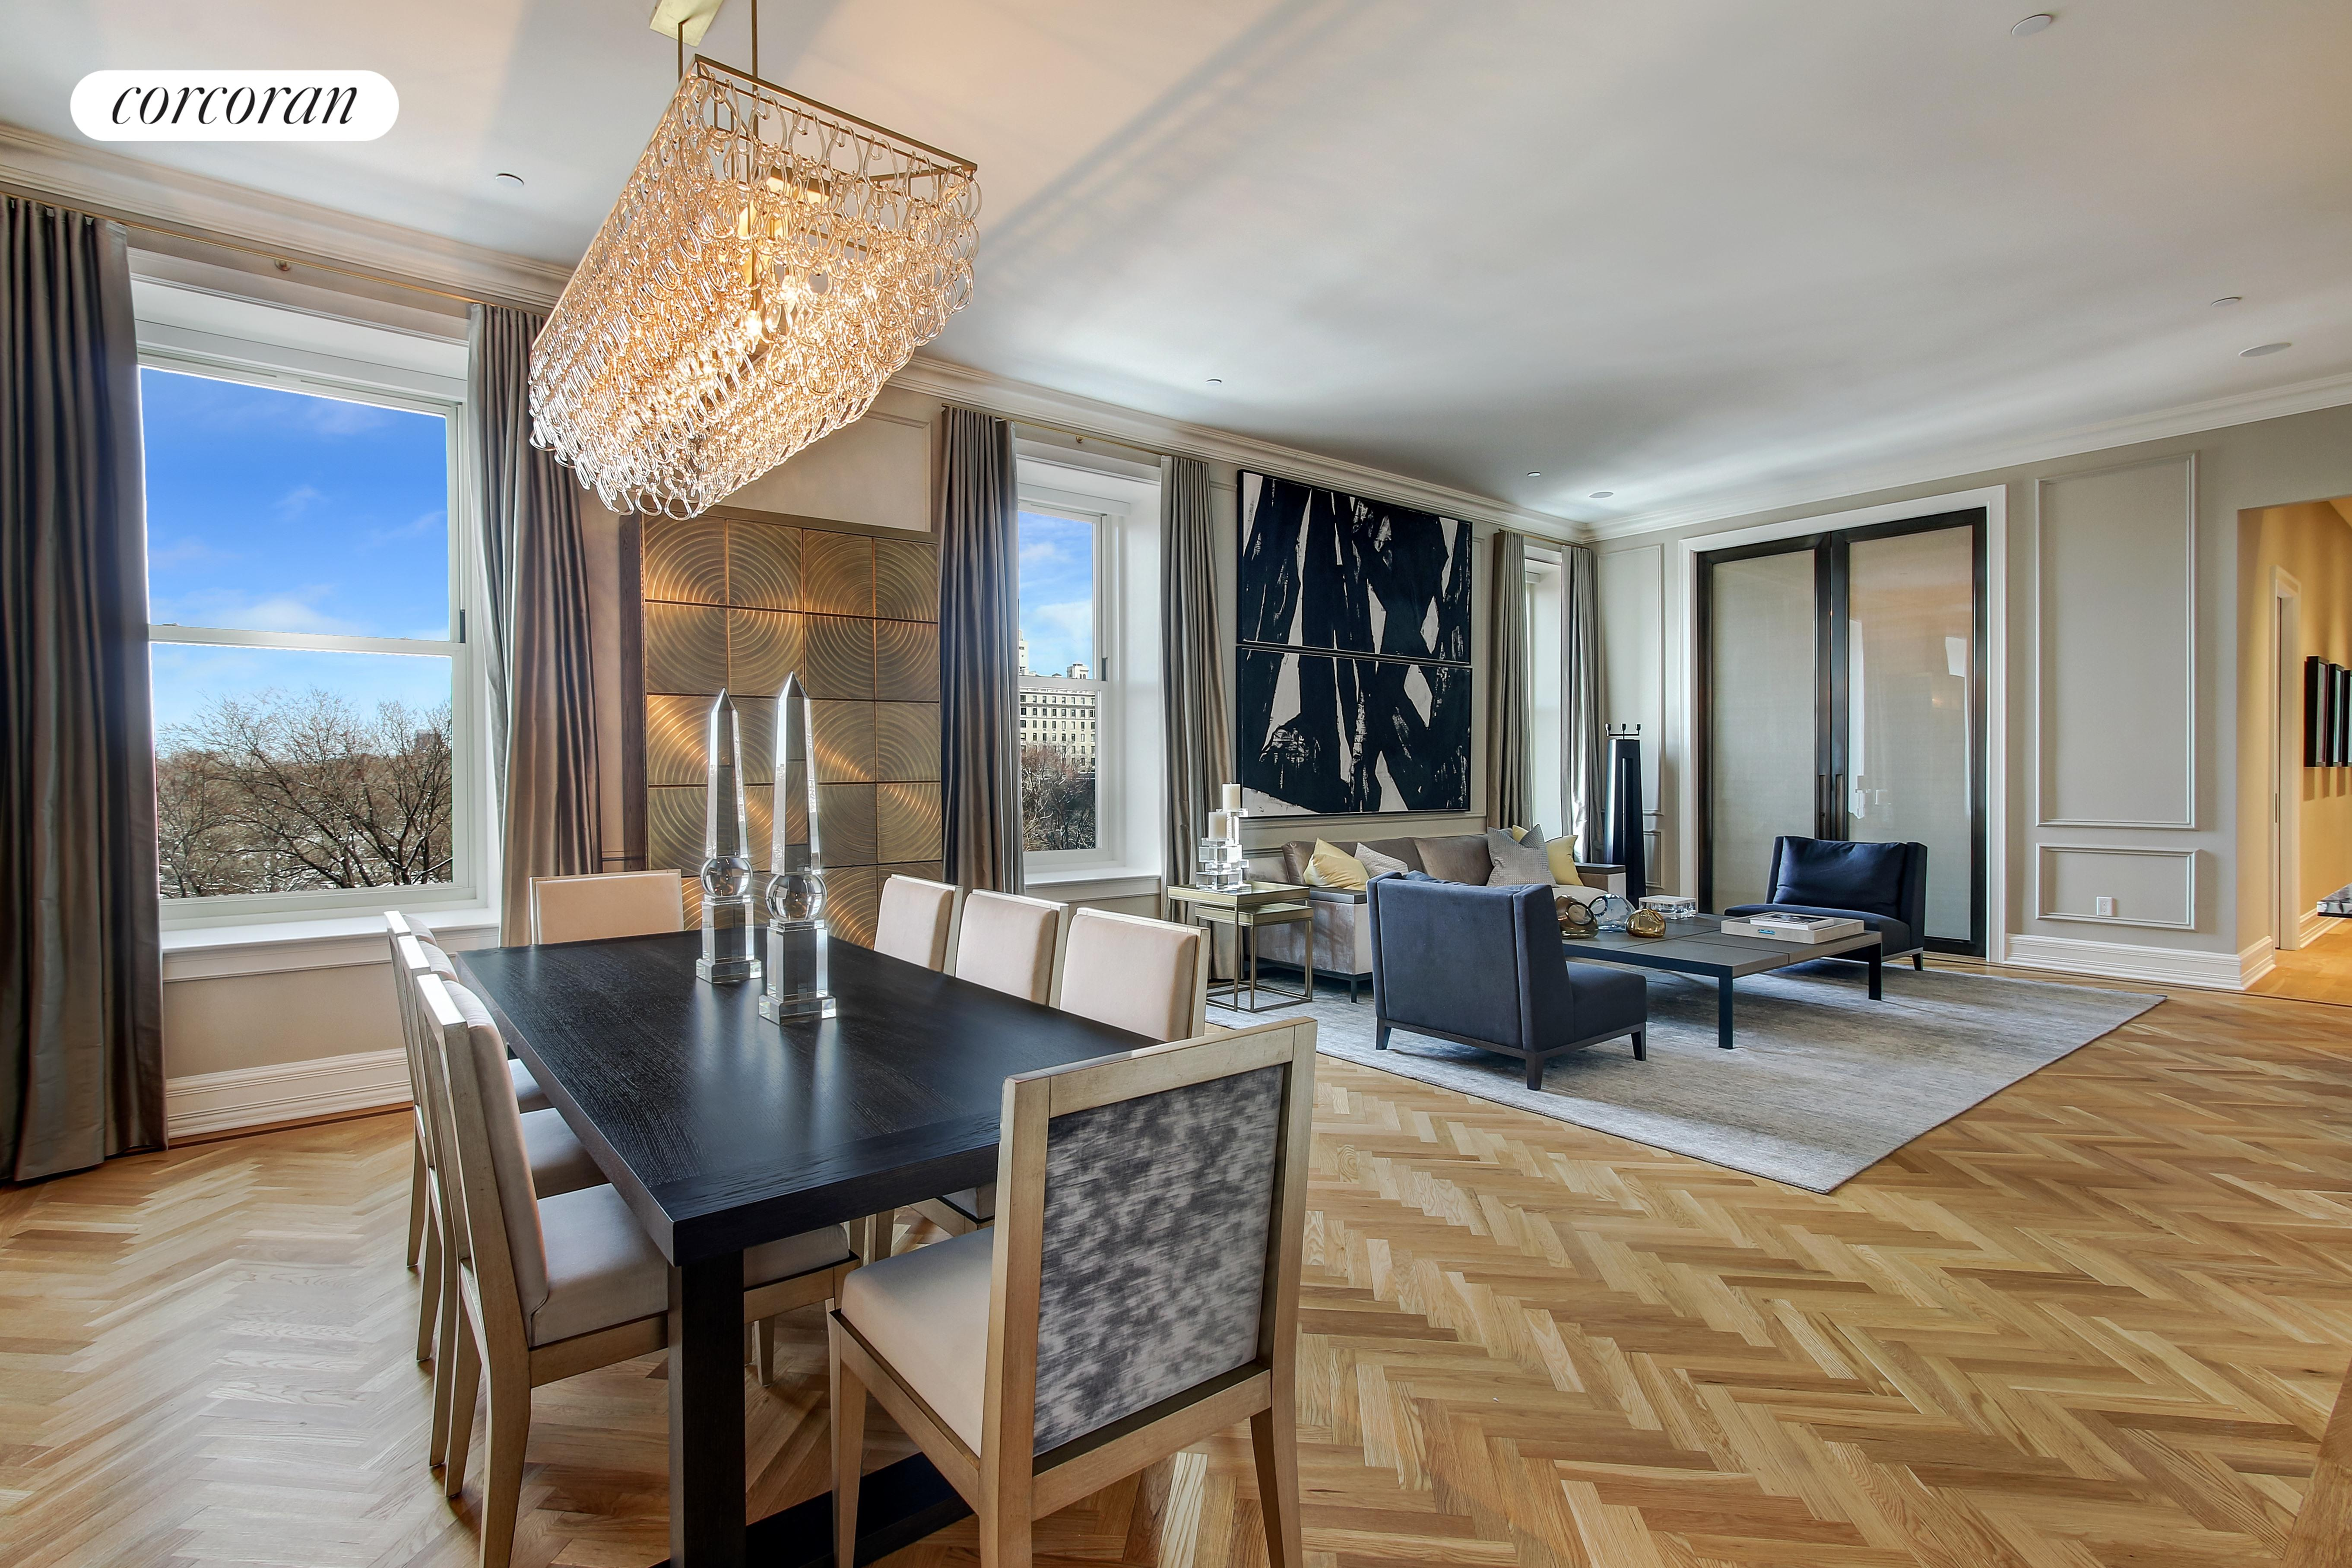 Condominium for Sale at The Plaza Residences, 1 Central Park South 601/602/603 1 Central Park South New York, New York 10019 United States